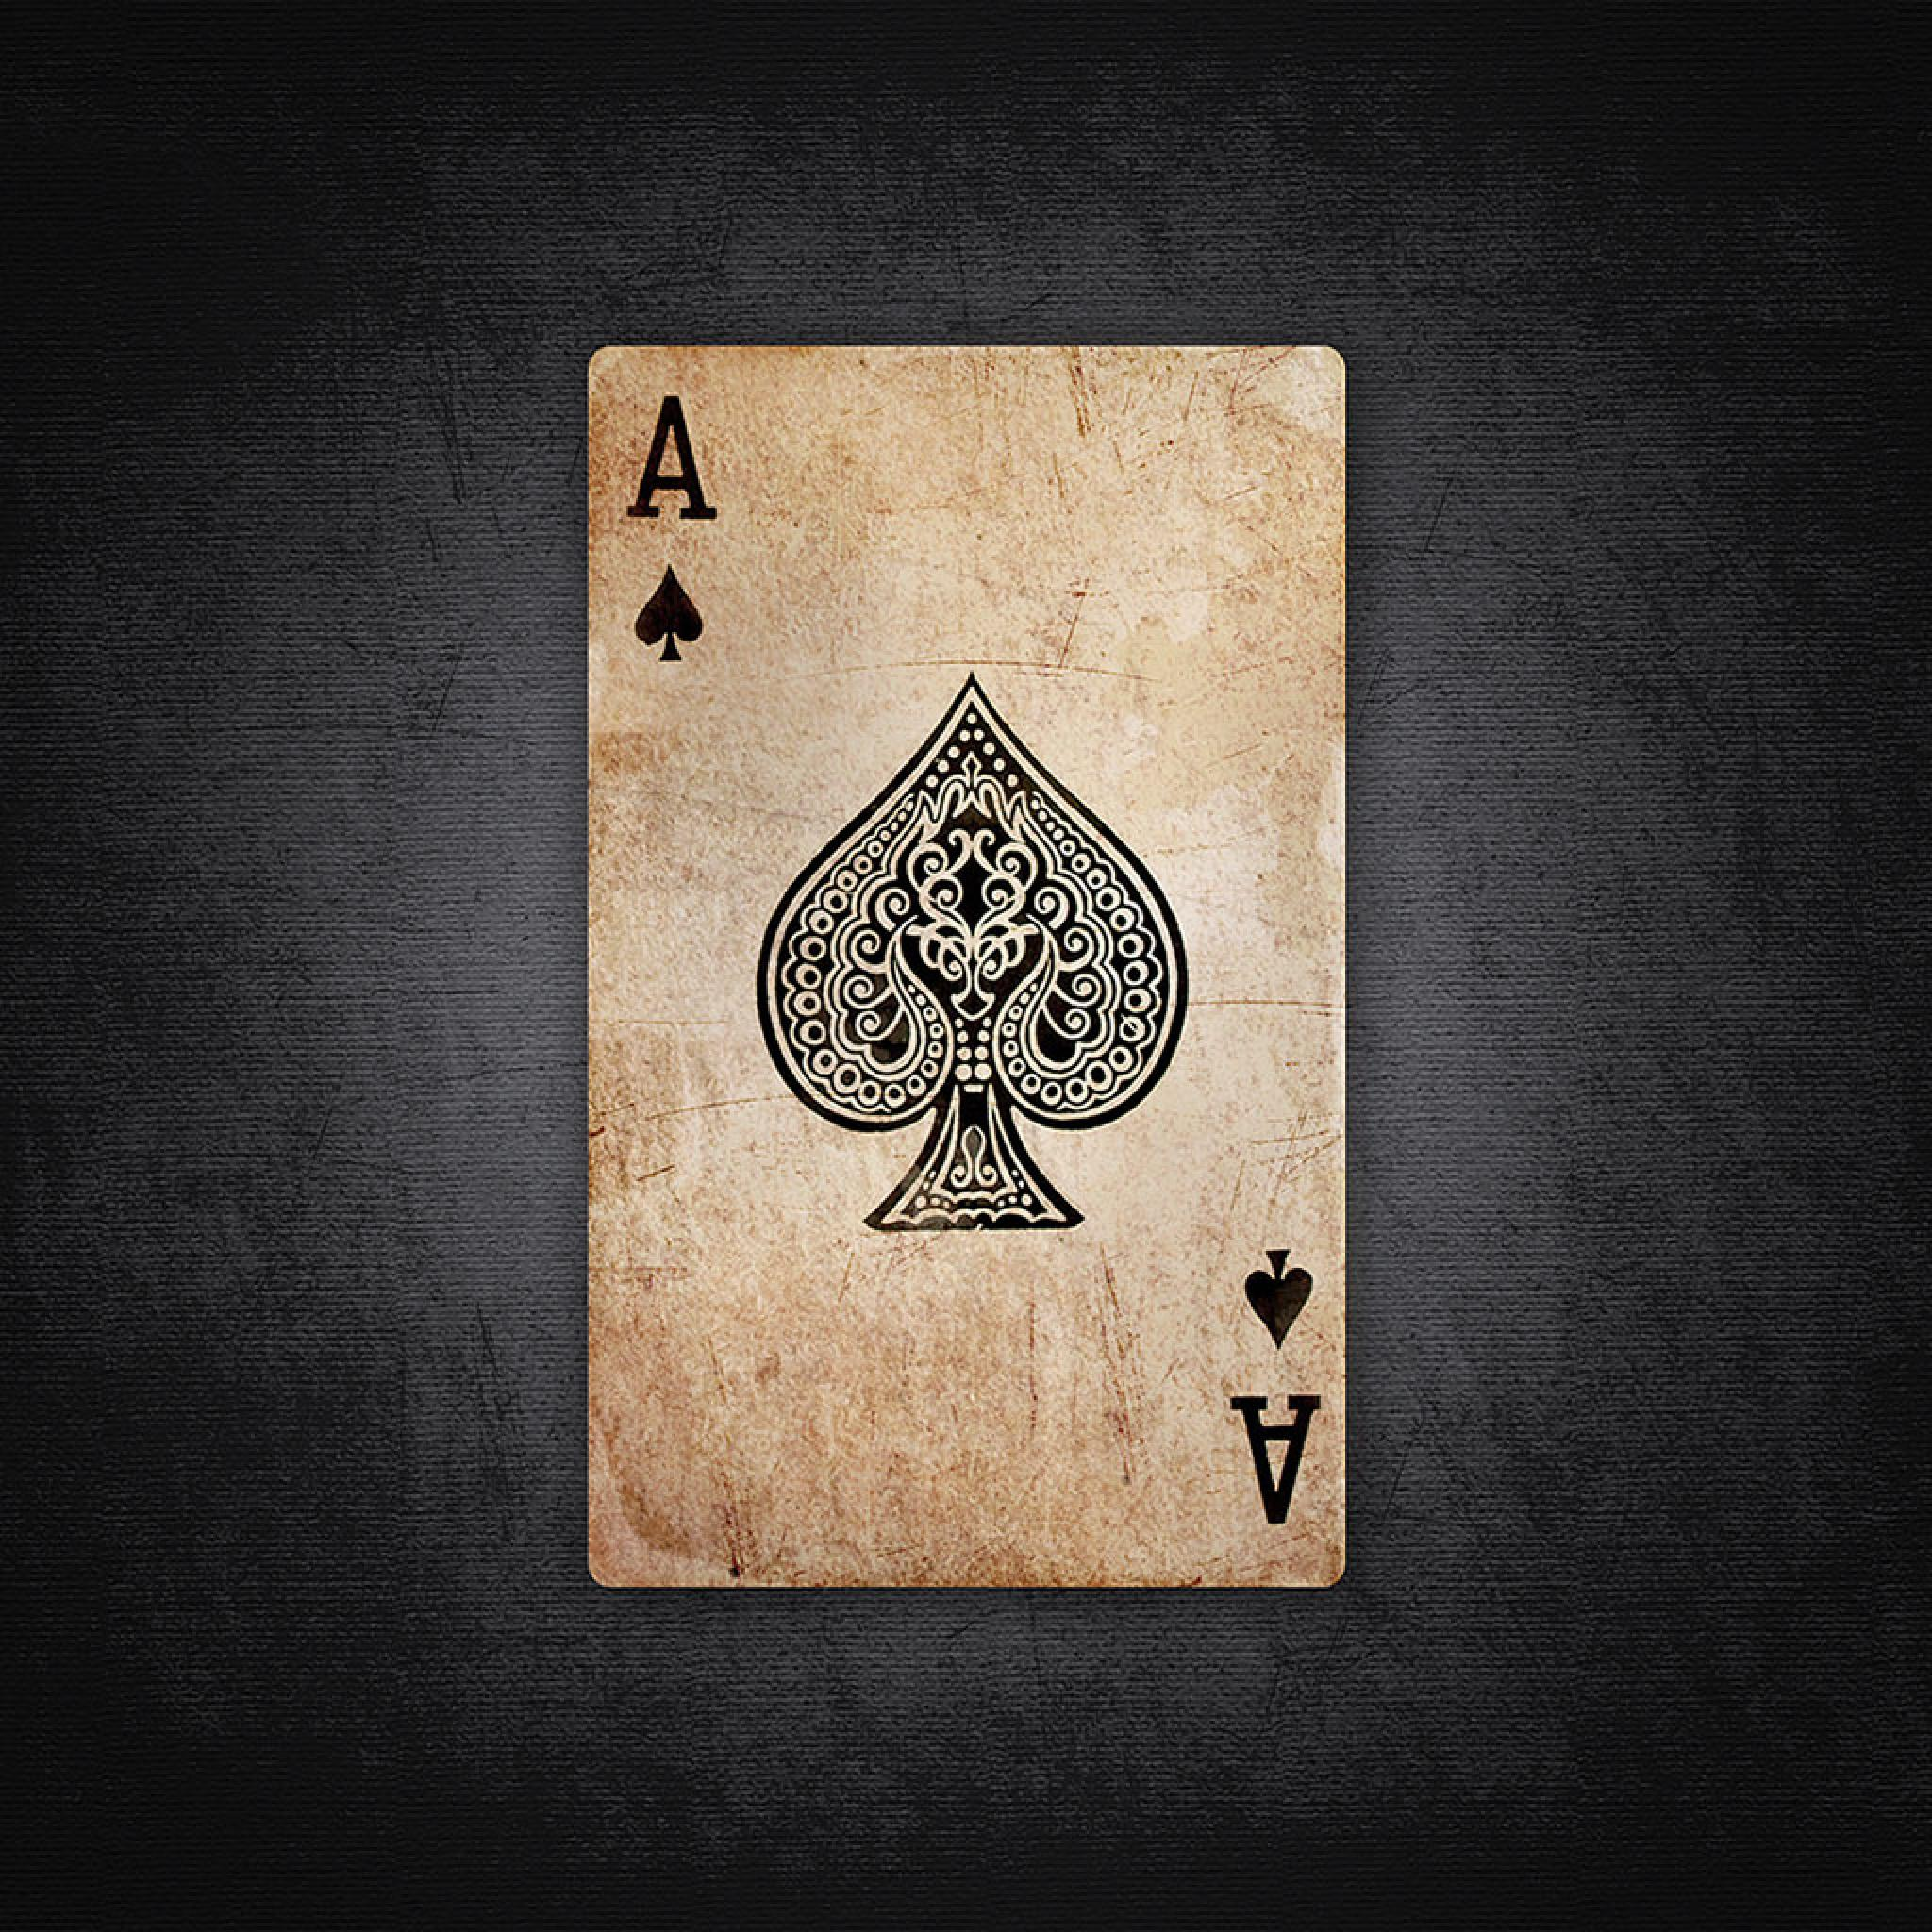 Old Lady Wallpaper Cute Miscellaneous Black Ace Of Hearts Ipad Iphone Hd